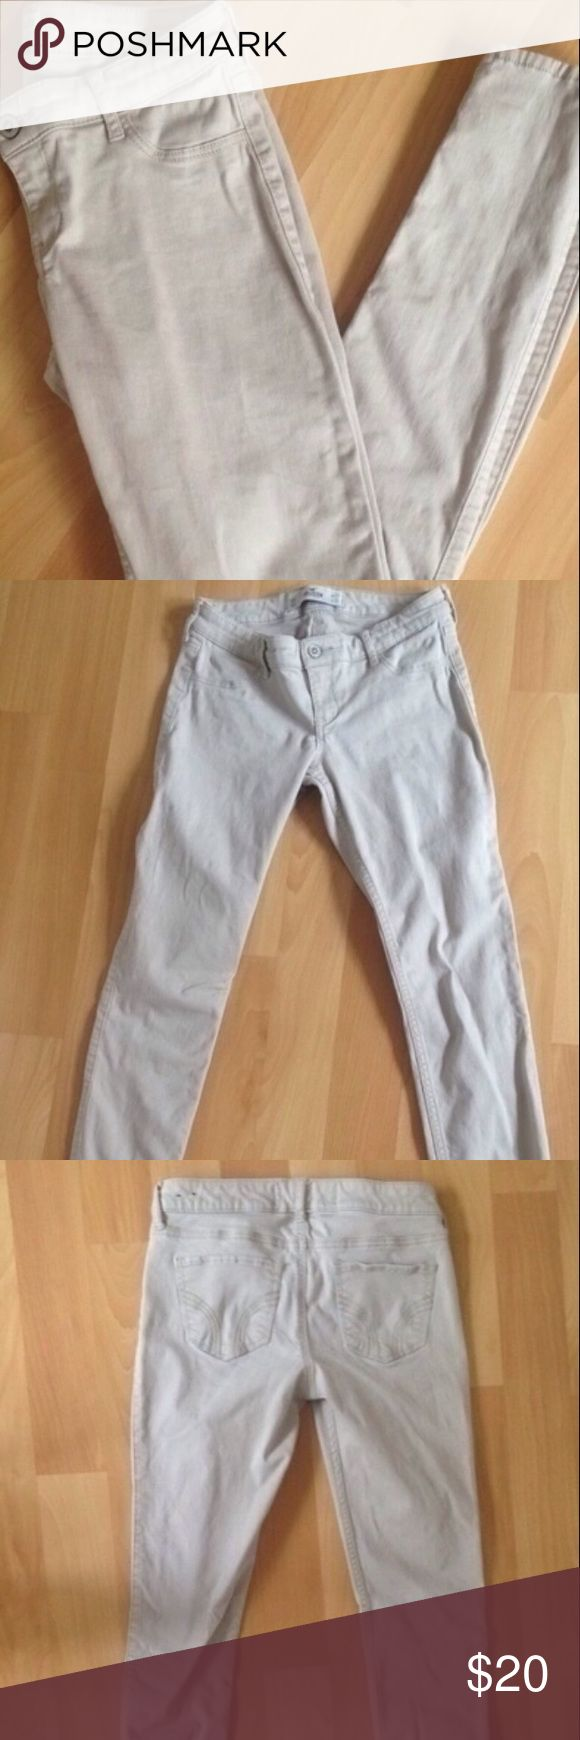 Hollister khaki leggings Light khaki color begging a from hollister so cute and flattering perfect for school uniform etc Hollister Jeans Skinny